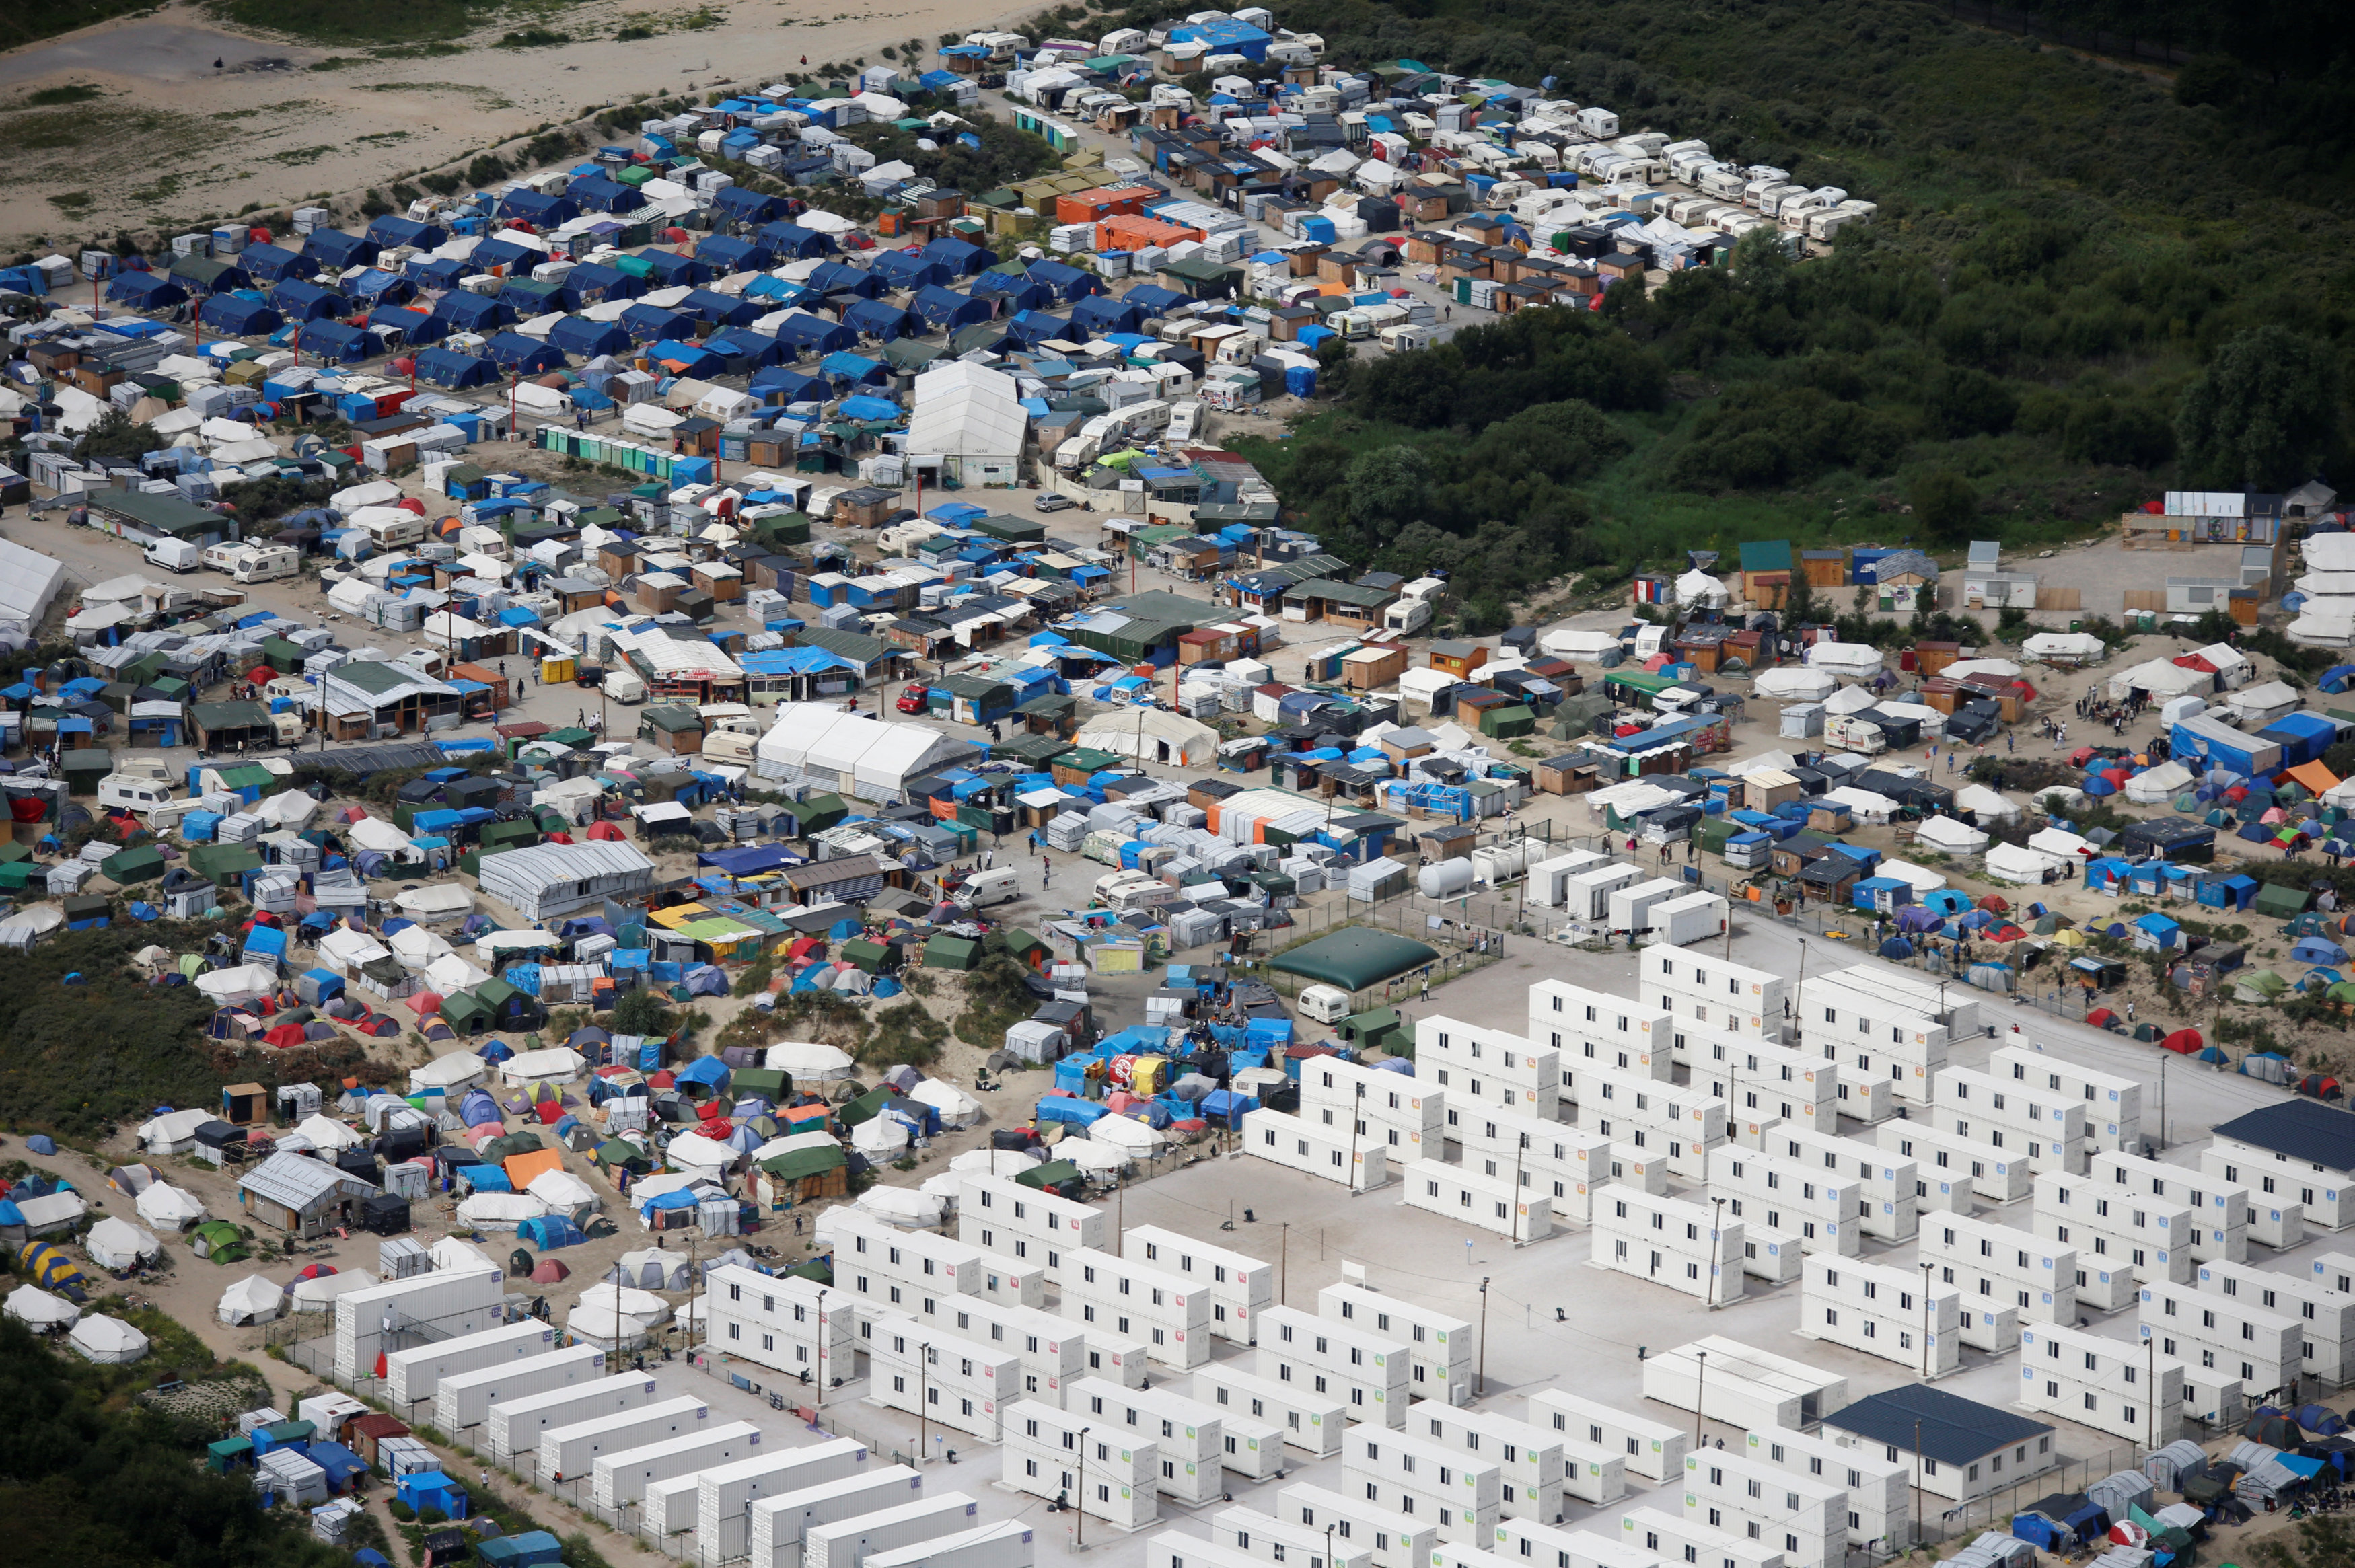 Aerial view of a makeshift camp as containers (front) are put into place to house migrants living in what is known as the Jungle, a sprawling camp in Calais, France, August 14, 2016